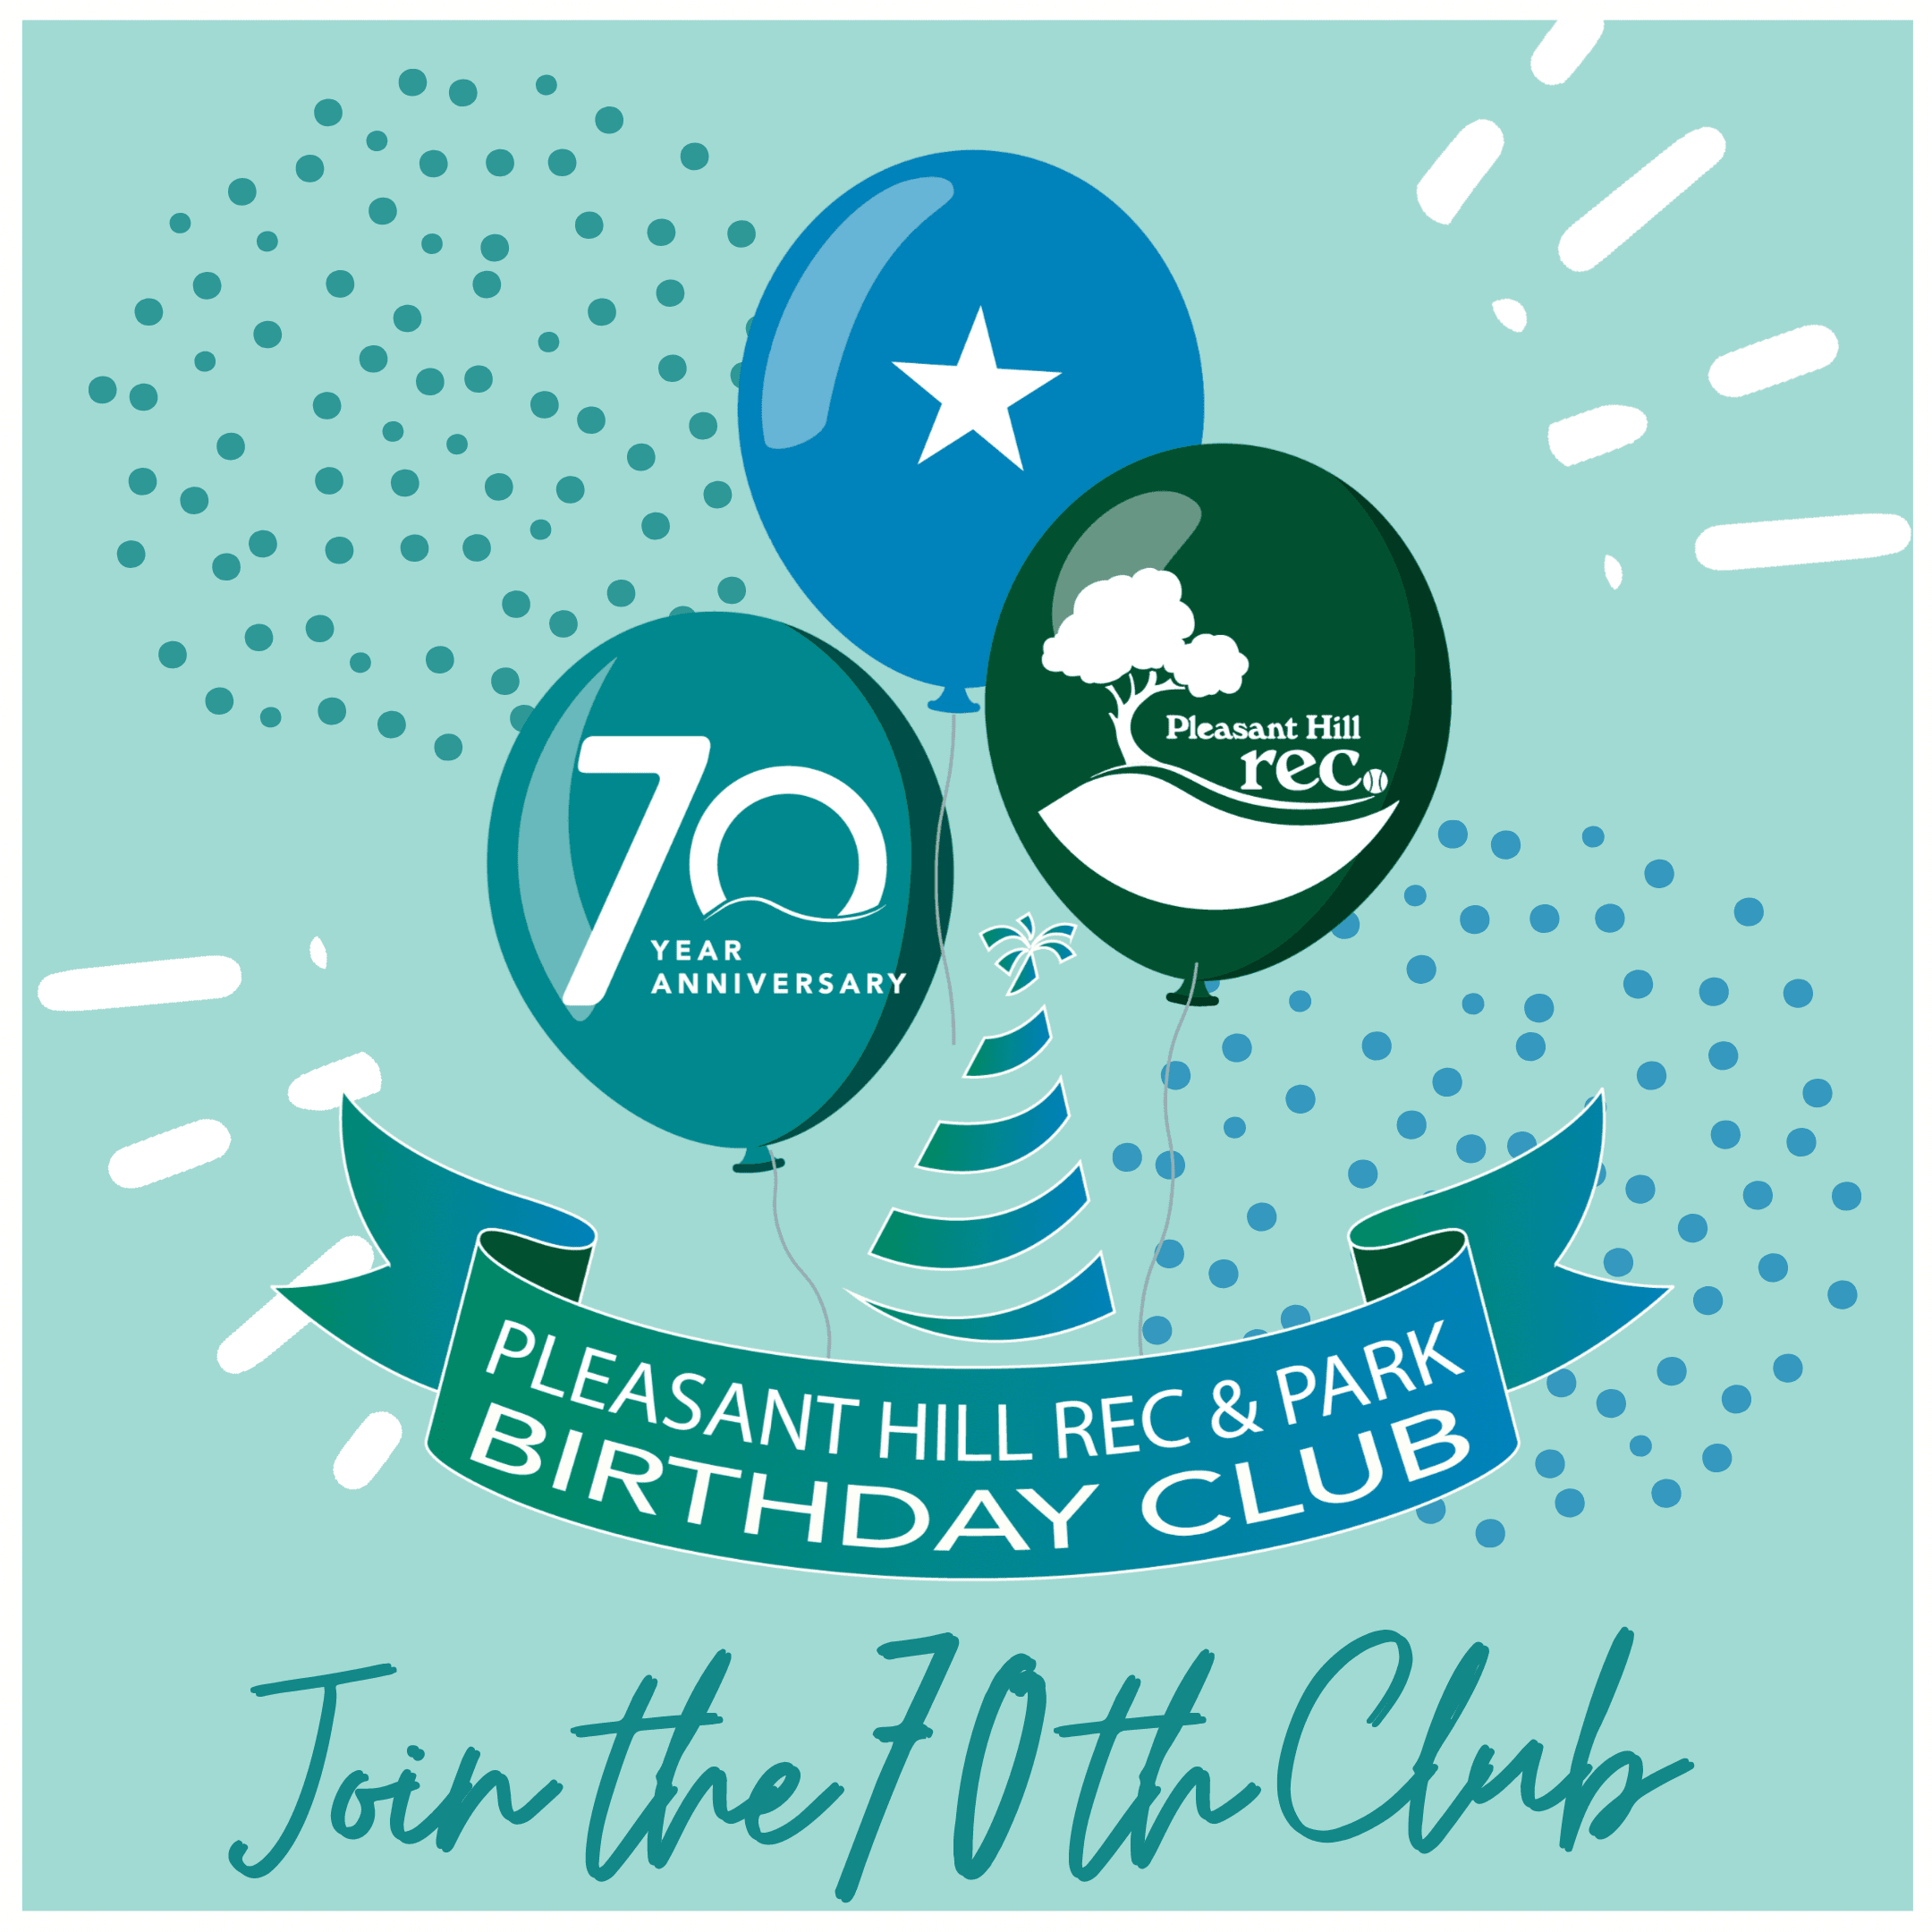 70th Birthday Club Logo with floating balloons